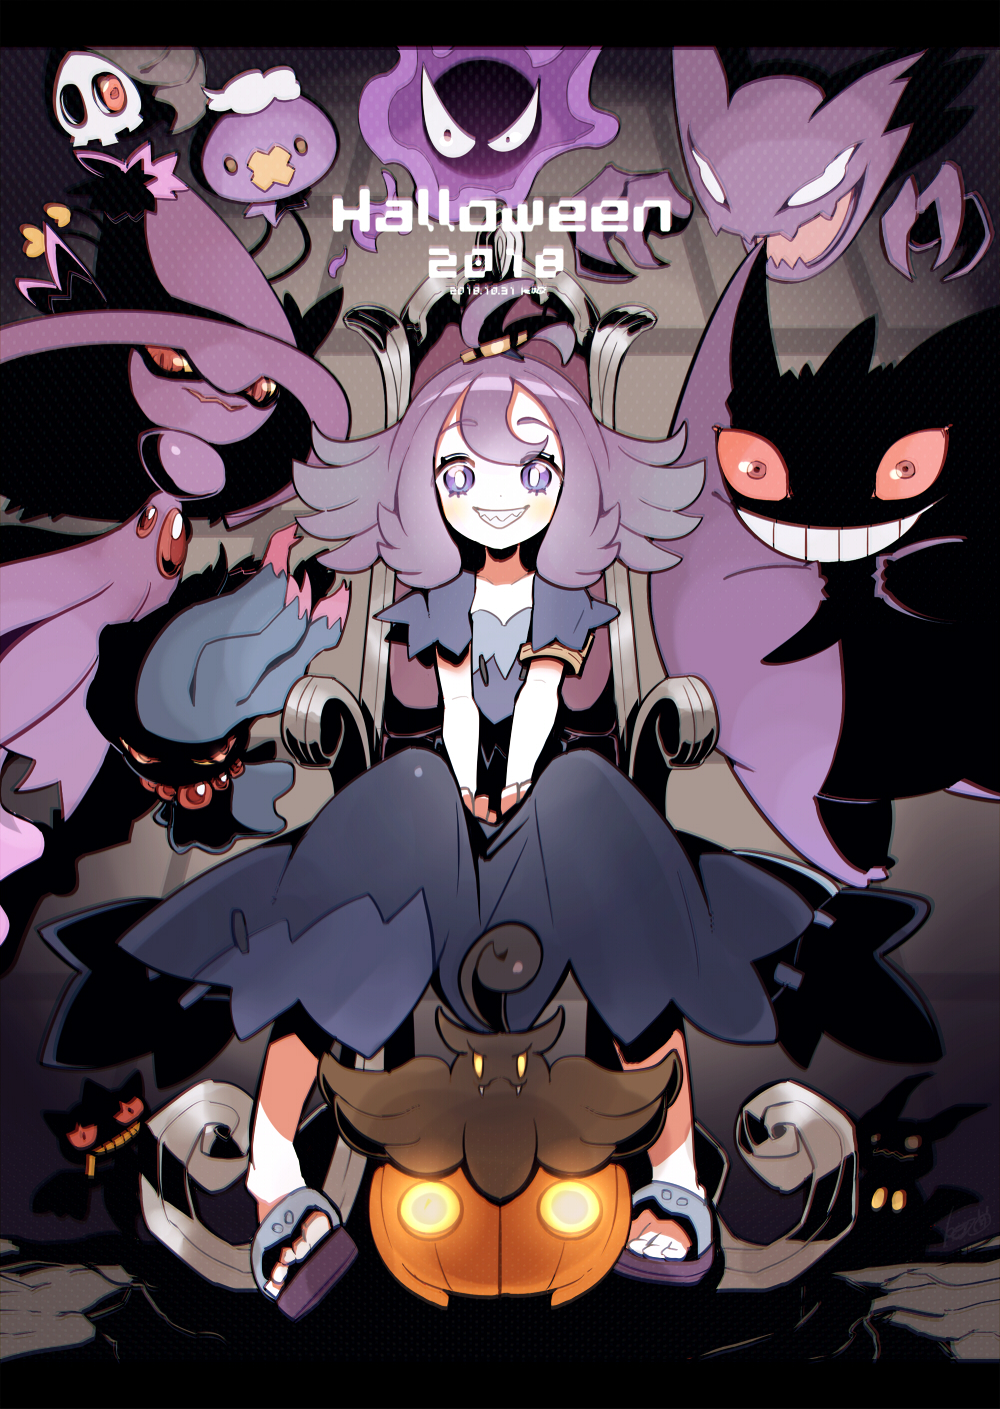 1girl 2018 acerola_(pokemon) antenna_hair armlet artist_name banette bangs black_eyes blank_eyes blue_dress blush brown_eyes chair commentary_request constricted_pupils dated dress drifloon duskull elite_four fangs flat_chest floating full_body gastly gen_1_pokemon gen_3_pokemon gen_4_pokemon gen_6_pokemon gen_7_pokemon gengar ghost grin hair_ornament halloween hands_up happy haunter highres keijou_(cave) letterboxed looking_at_viewer mimikyu misdreavus mismagius one-eyed orange_sclera pokemon pokemon_(creature) pokemon_(game) pokemon_sm pumpkaboo purple_footwear purple_hair red_eyes red_sclera sandals sharp_teeth shiny shiny_hair short_hair short_sleeves signature sitting smile teeth trial_captain violet_eyes white_eyes yellow_eyes yellow_sclera